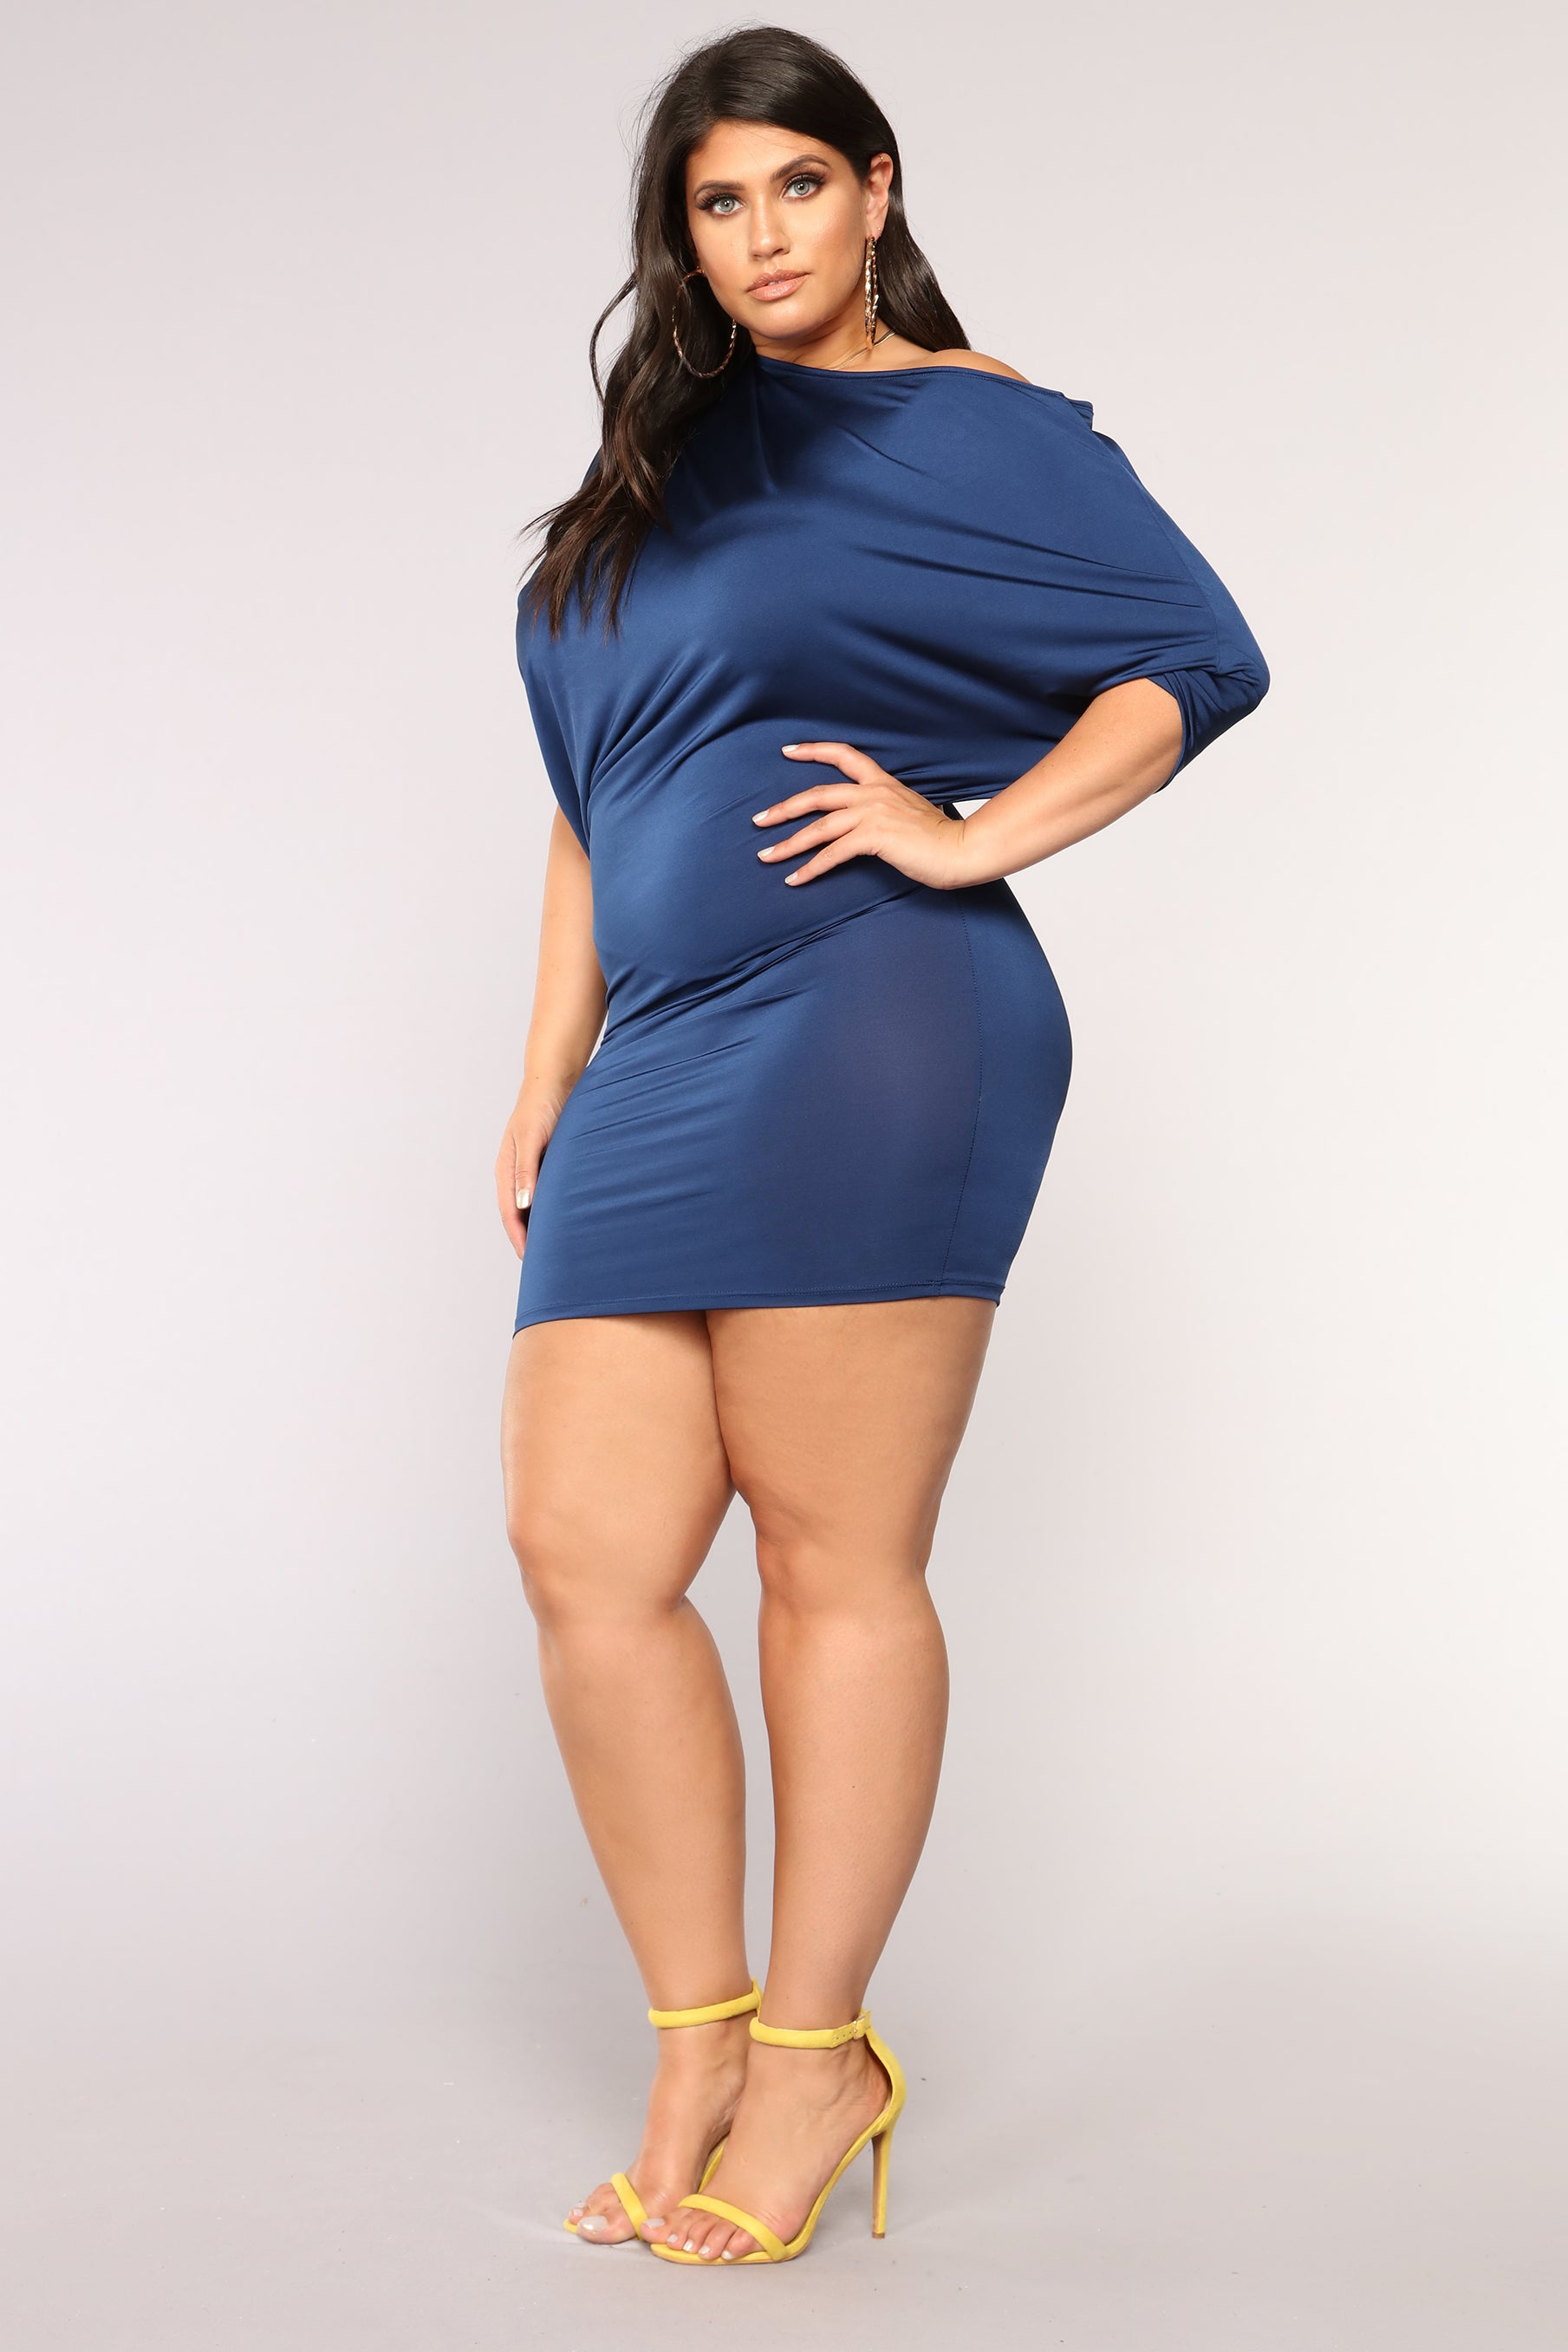 Wd bbw clothes try out